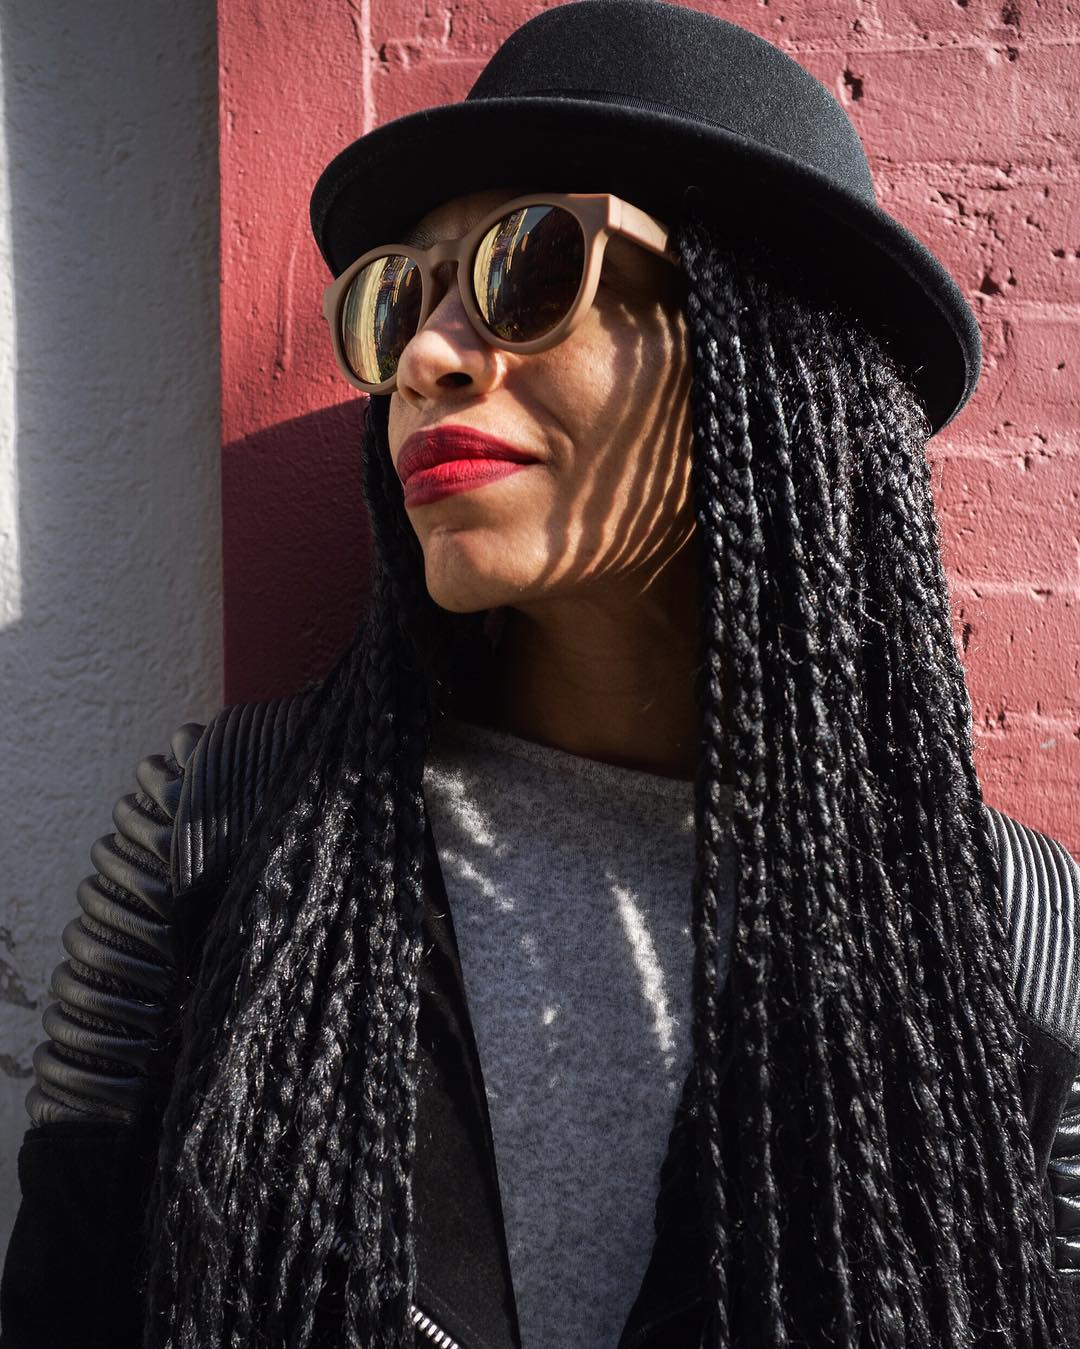 I saw Sonny () in SOHO. She had the dopest style and I loved her vibe and braids. I was a little intimidated at first